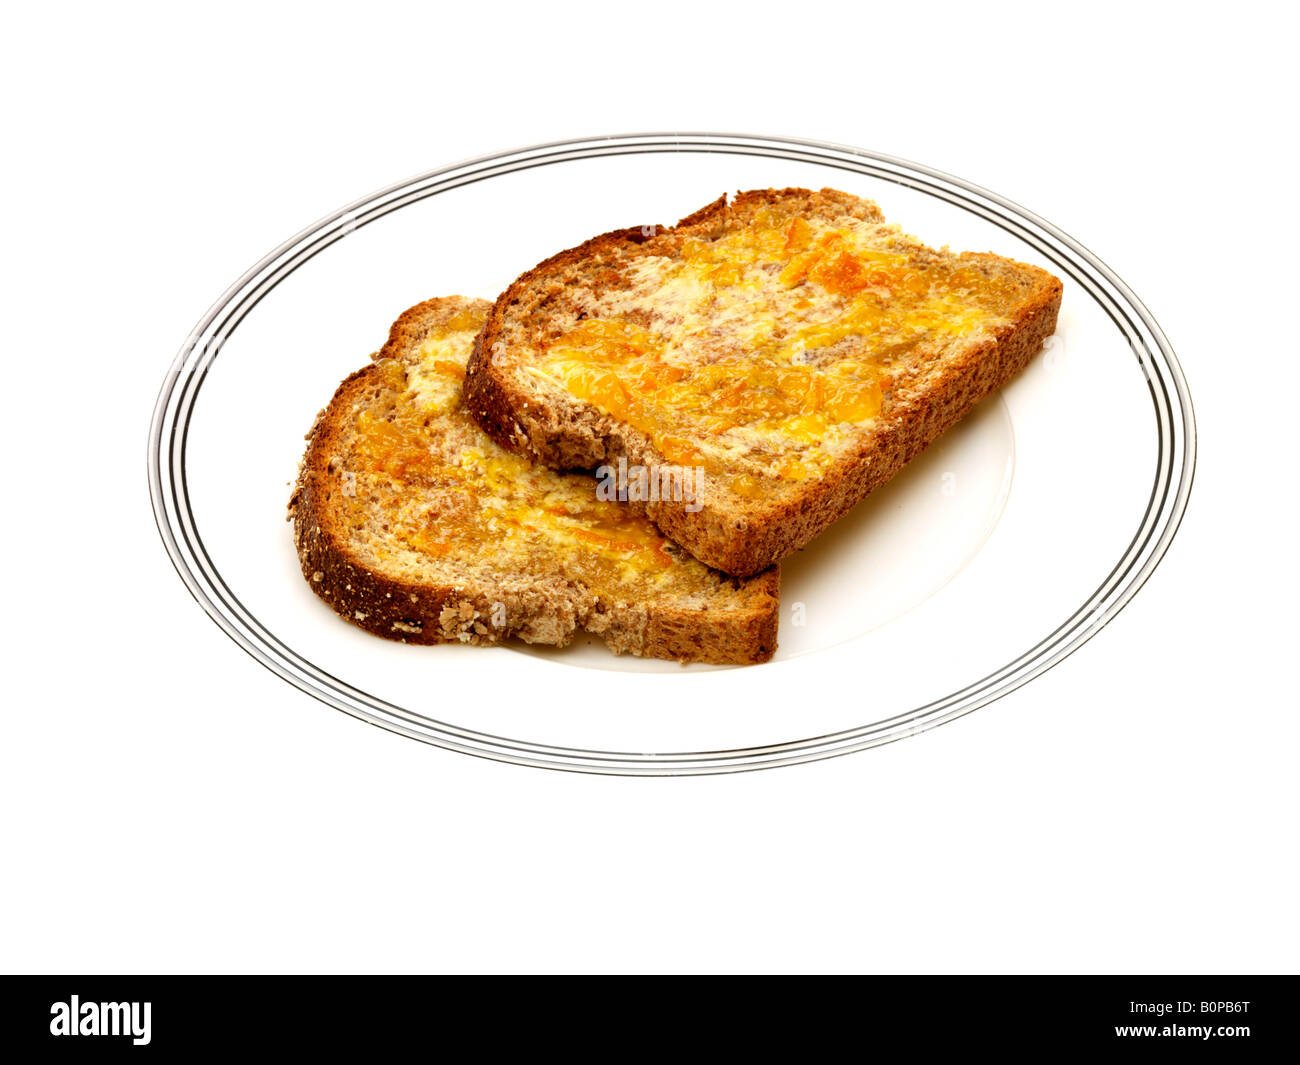 Wholemeal Toast With Marmalade Stock Photo